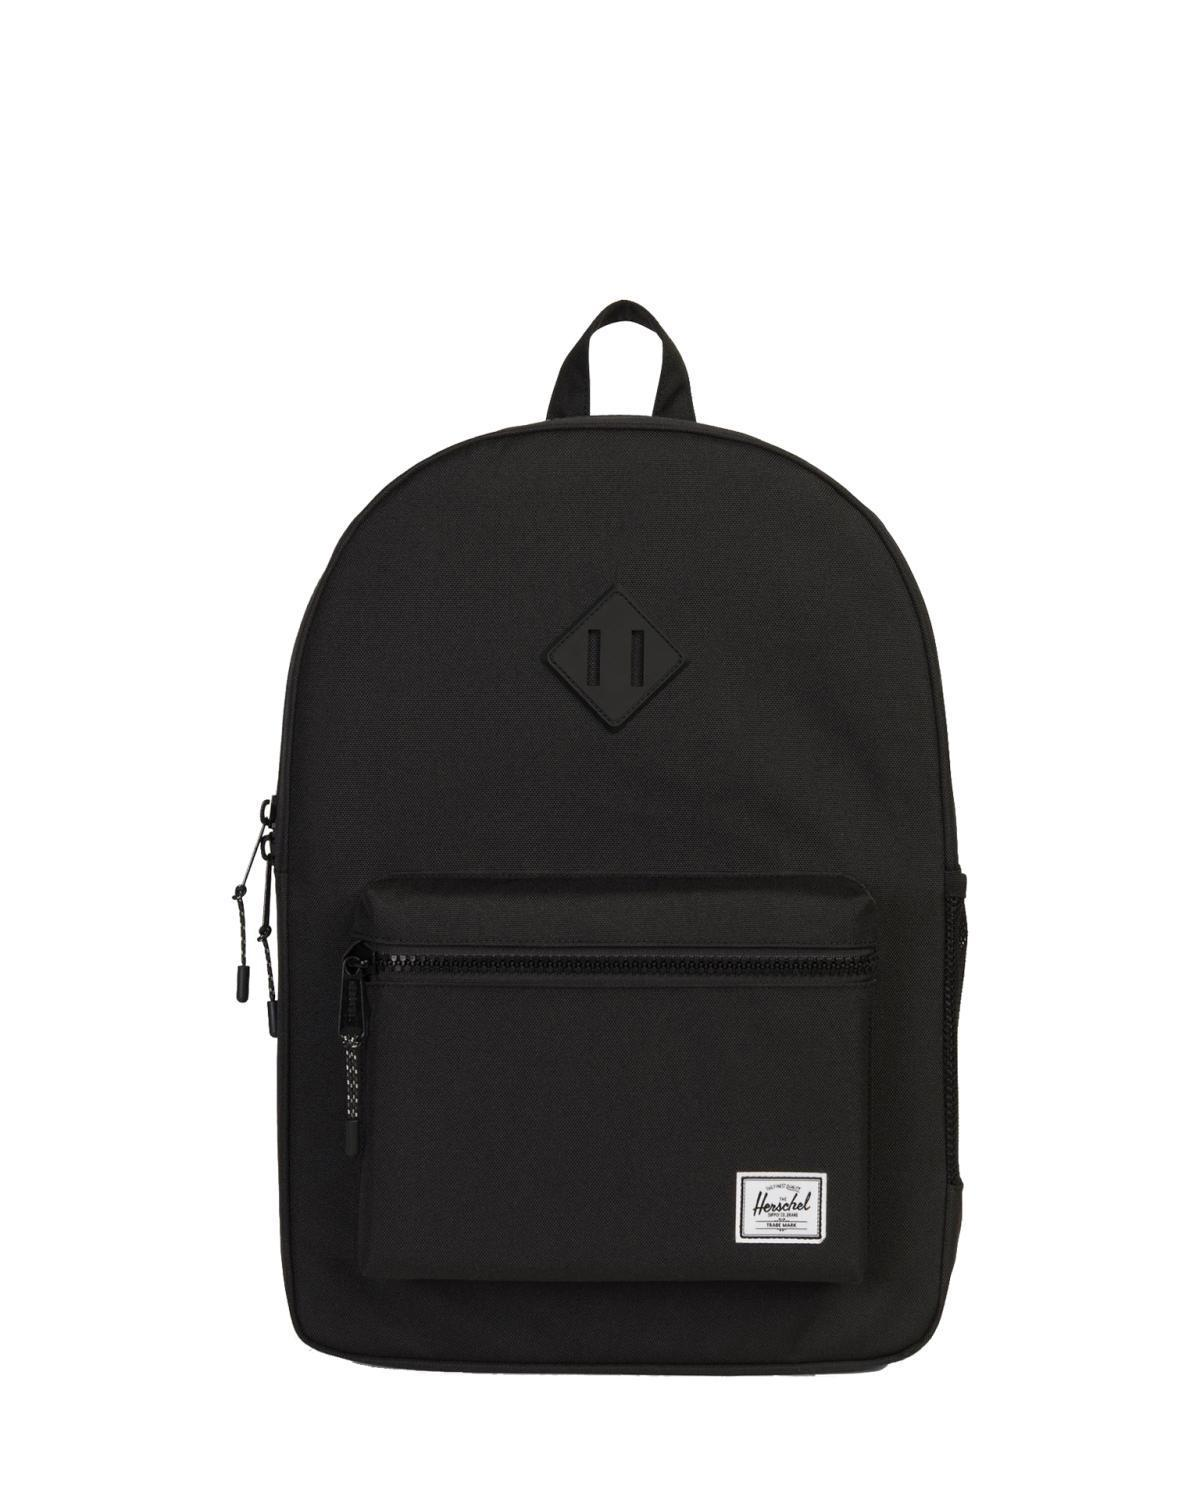 f9e0ec8576ef Little herschel supply co accessories youth heritage backpack XL in black